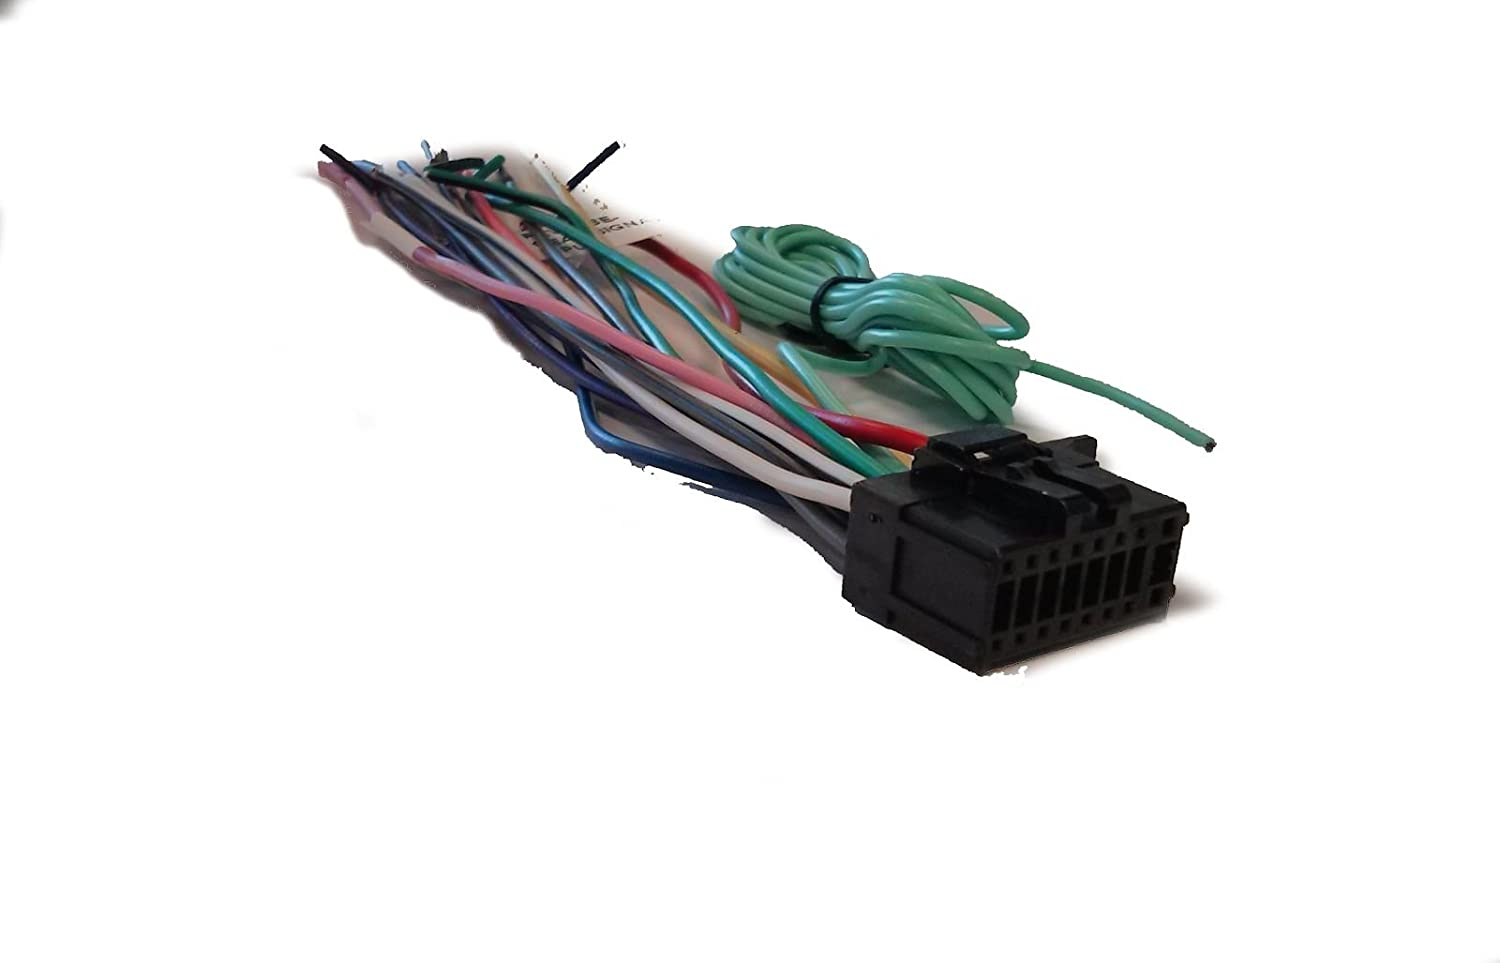 61s%2B2yUu BL._SL1500_ amazon com pioneer wire harness for sph da210 sph da100 sph da200 pioneer sph da210 wiring diagram at arjmand.co